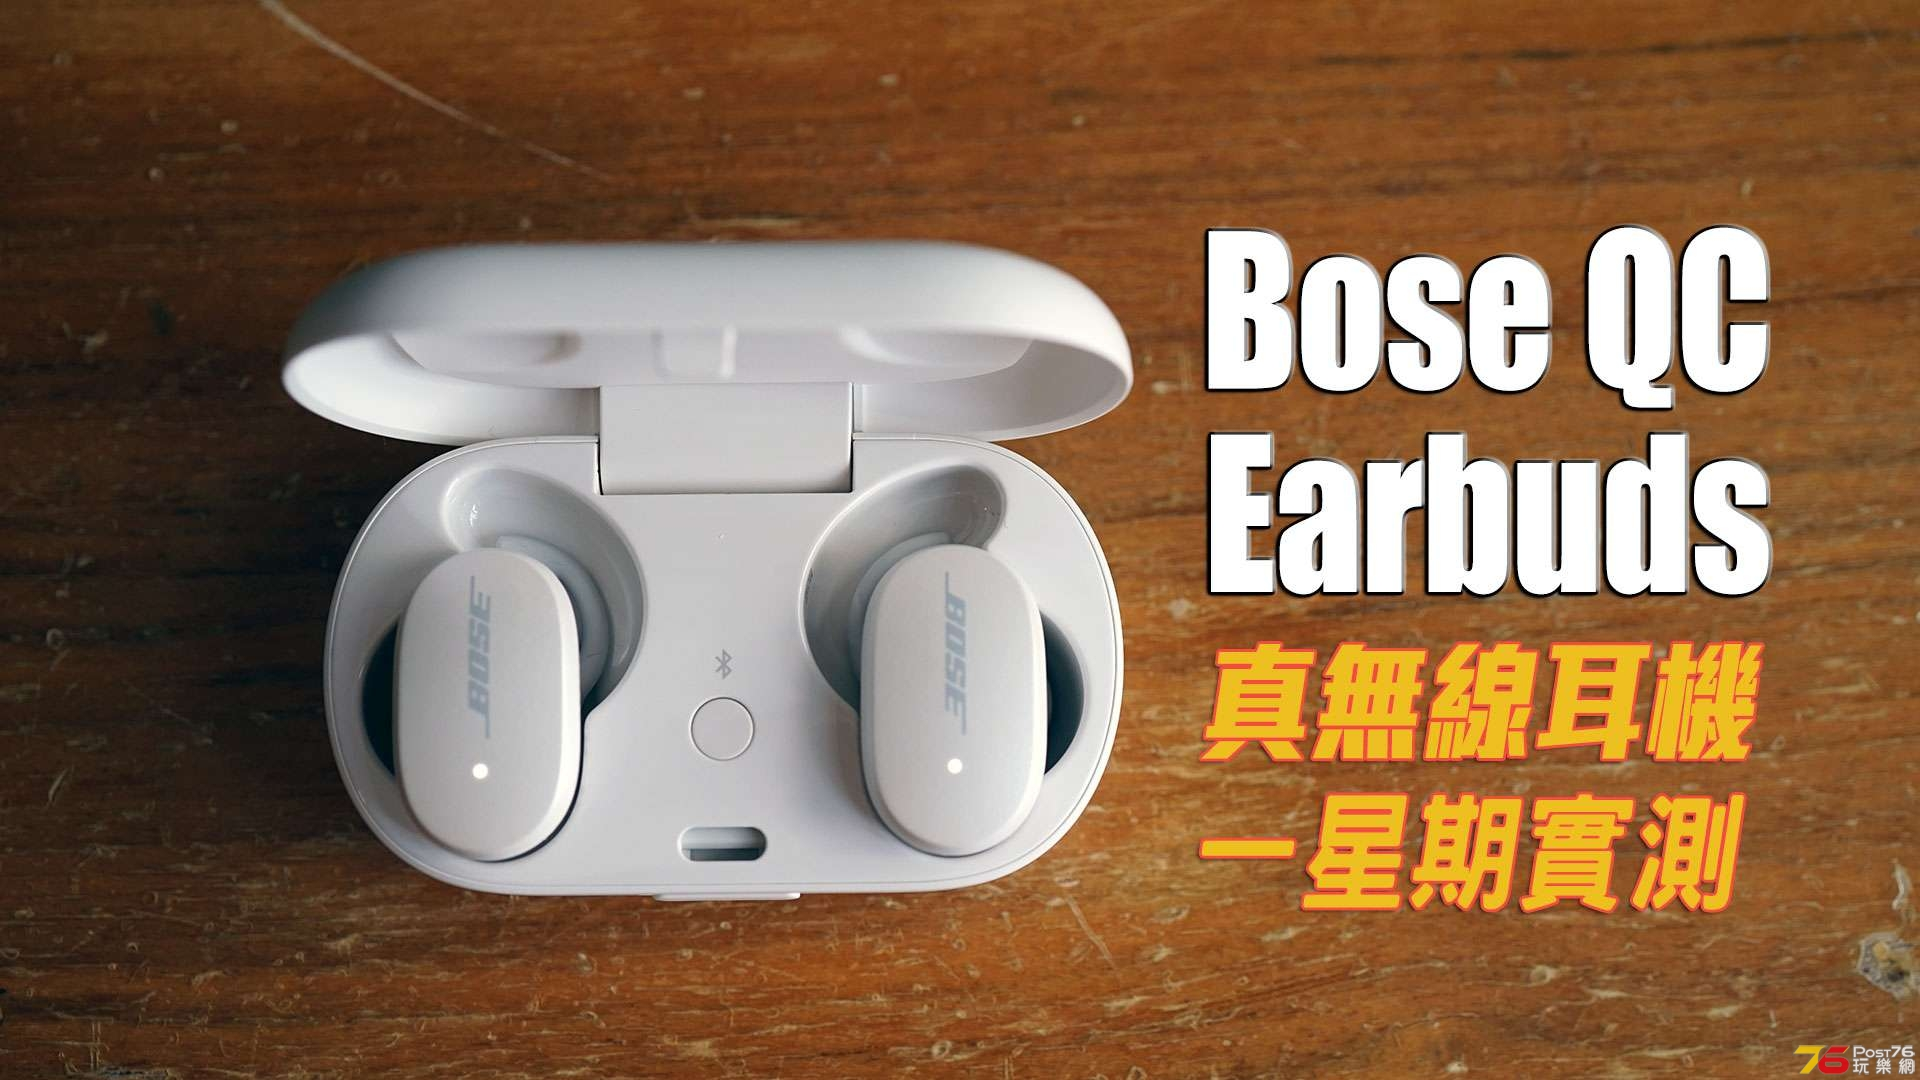 bose-qc-earbugs-review.jpg